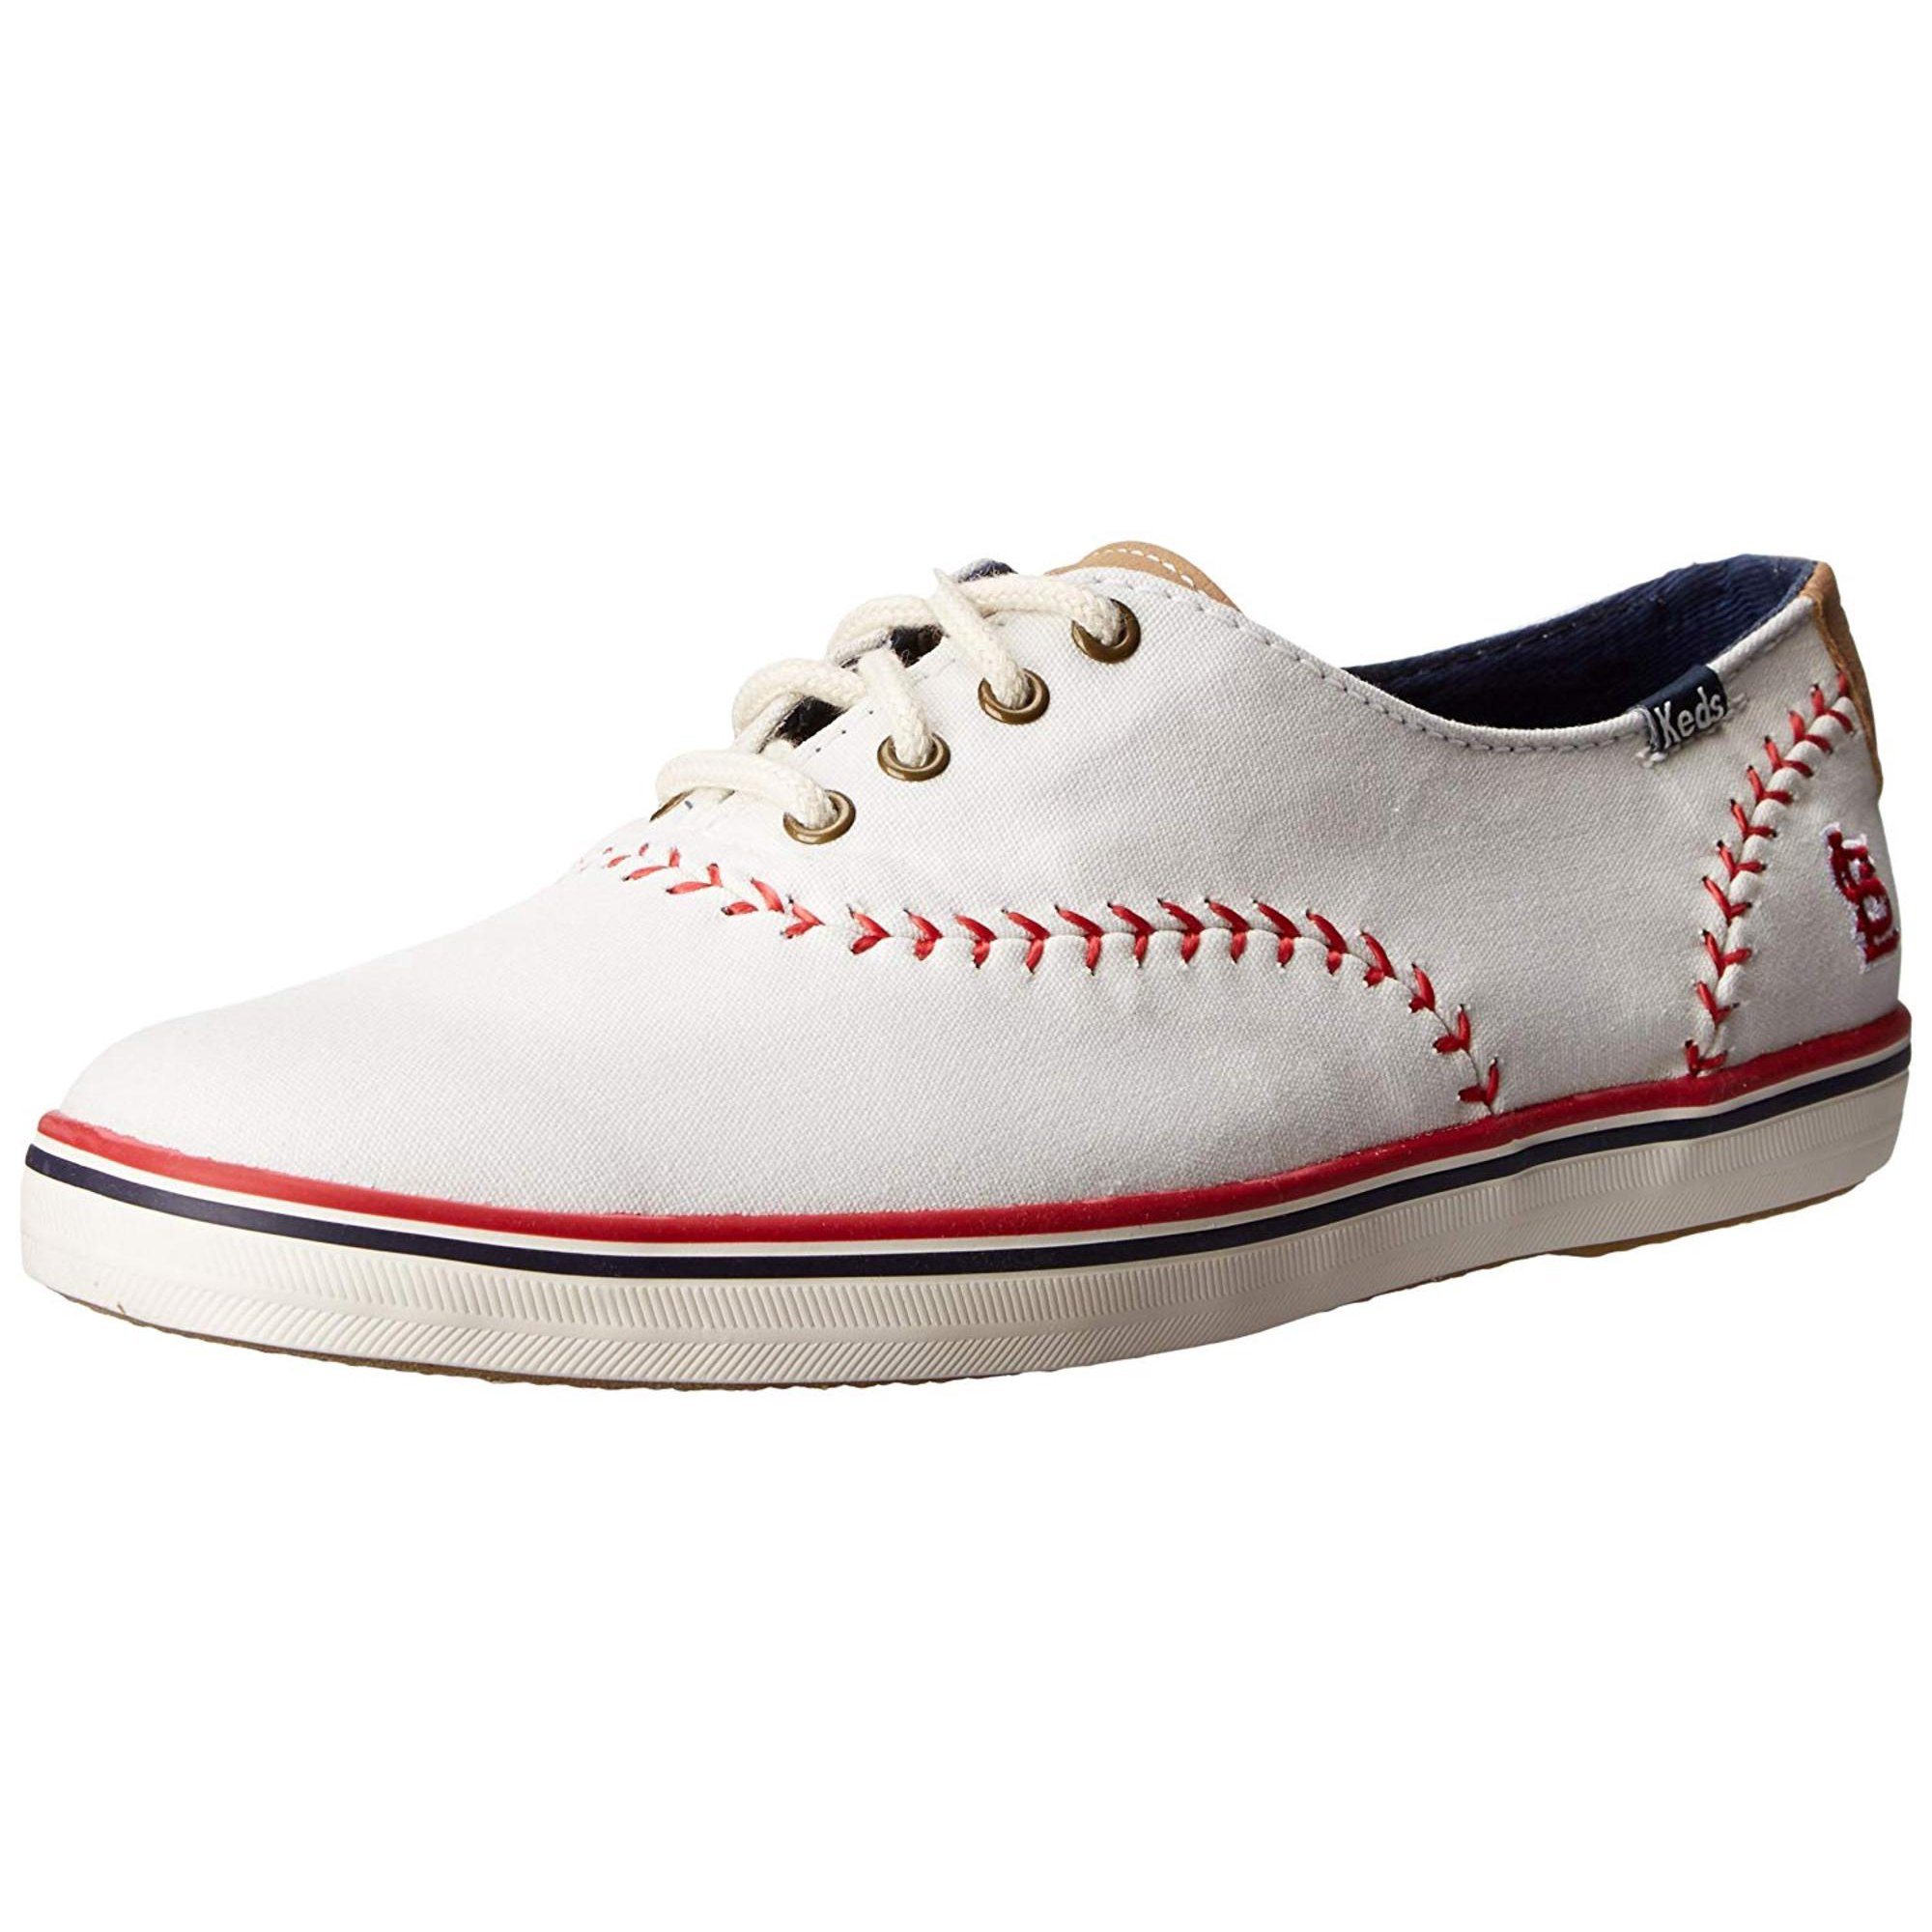 8bd6d197b5a Keds Women s Champion MLB Pennant Baseball Fashion Sneaker